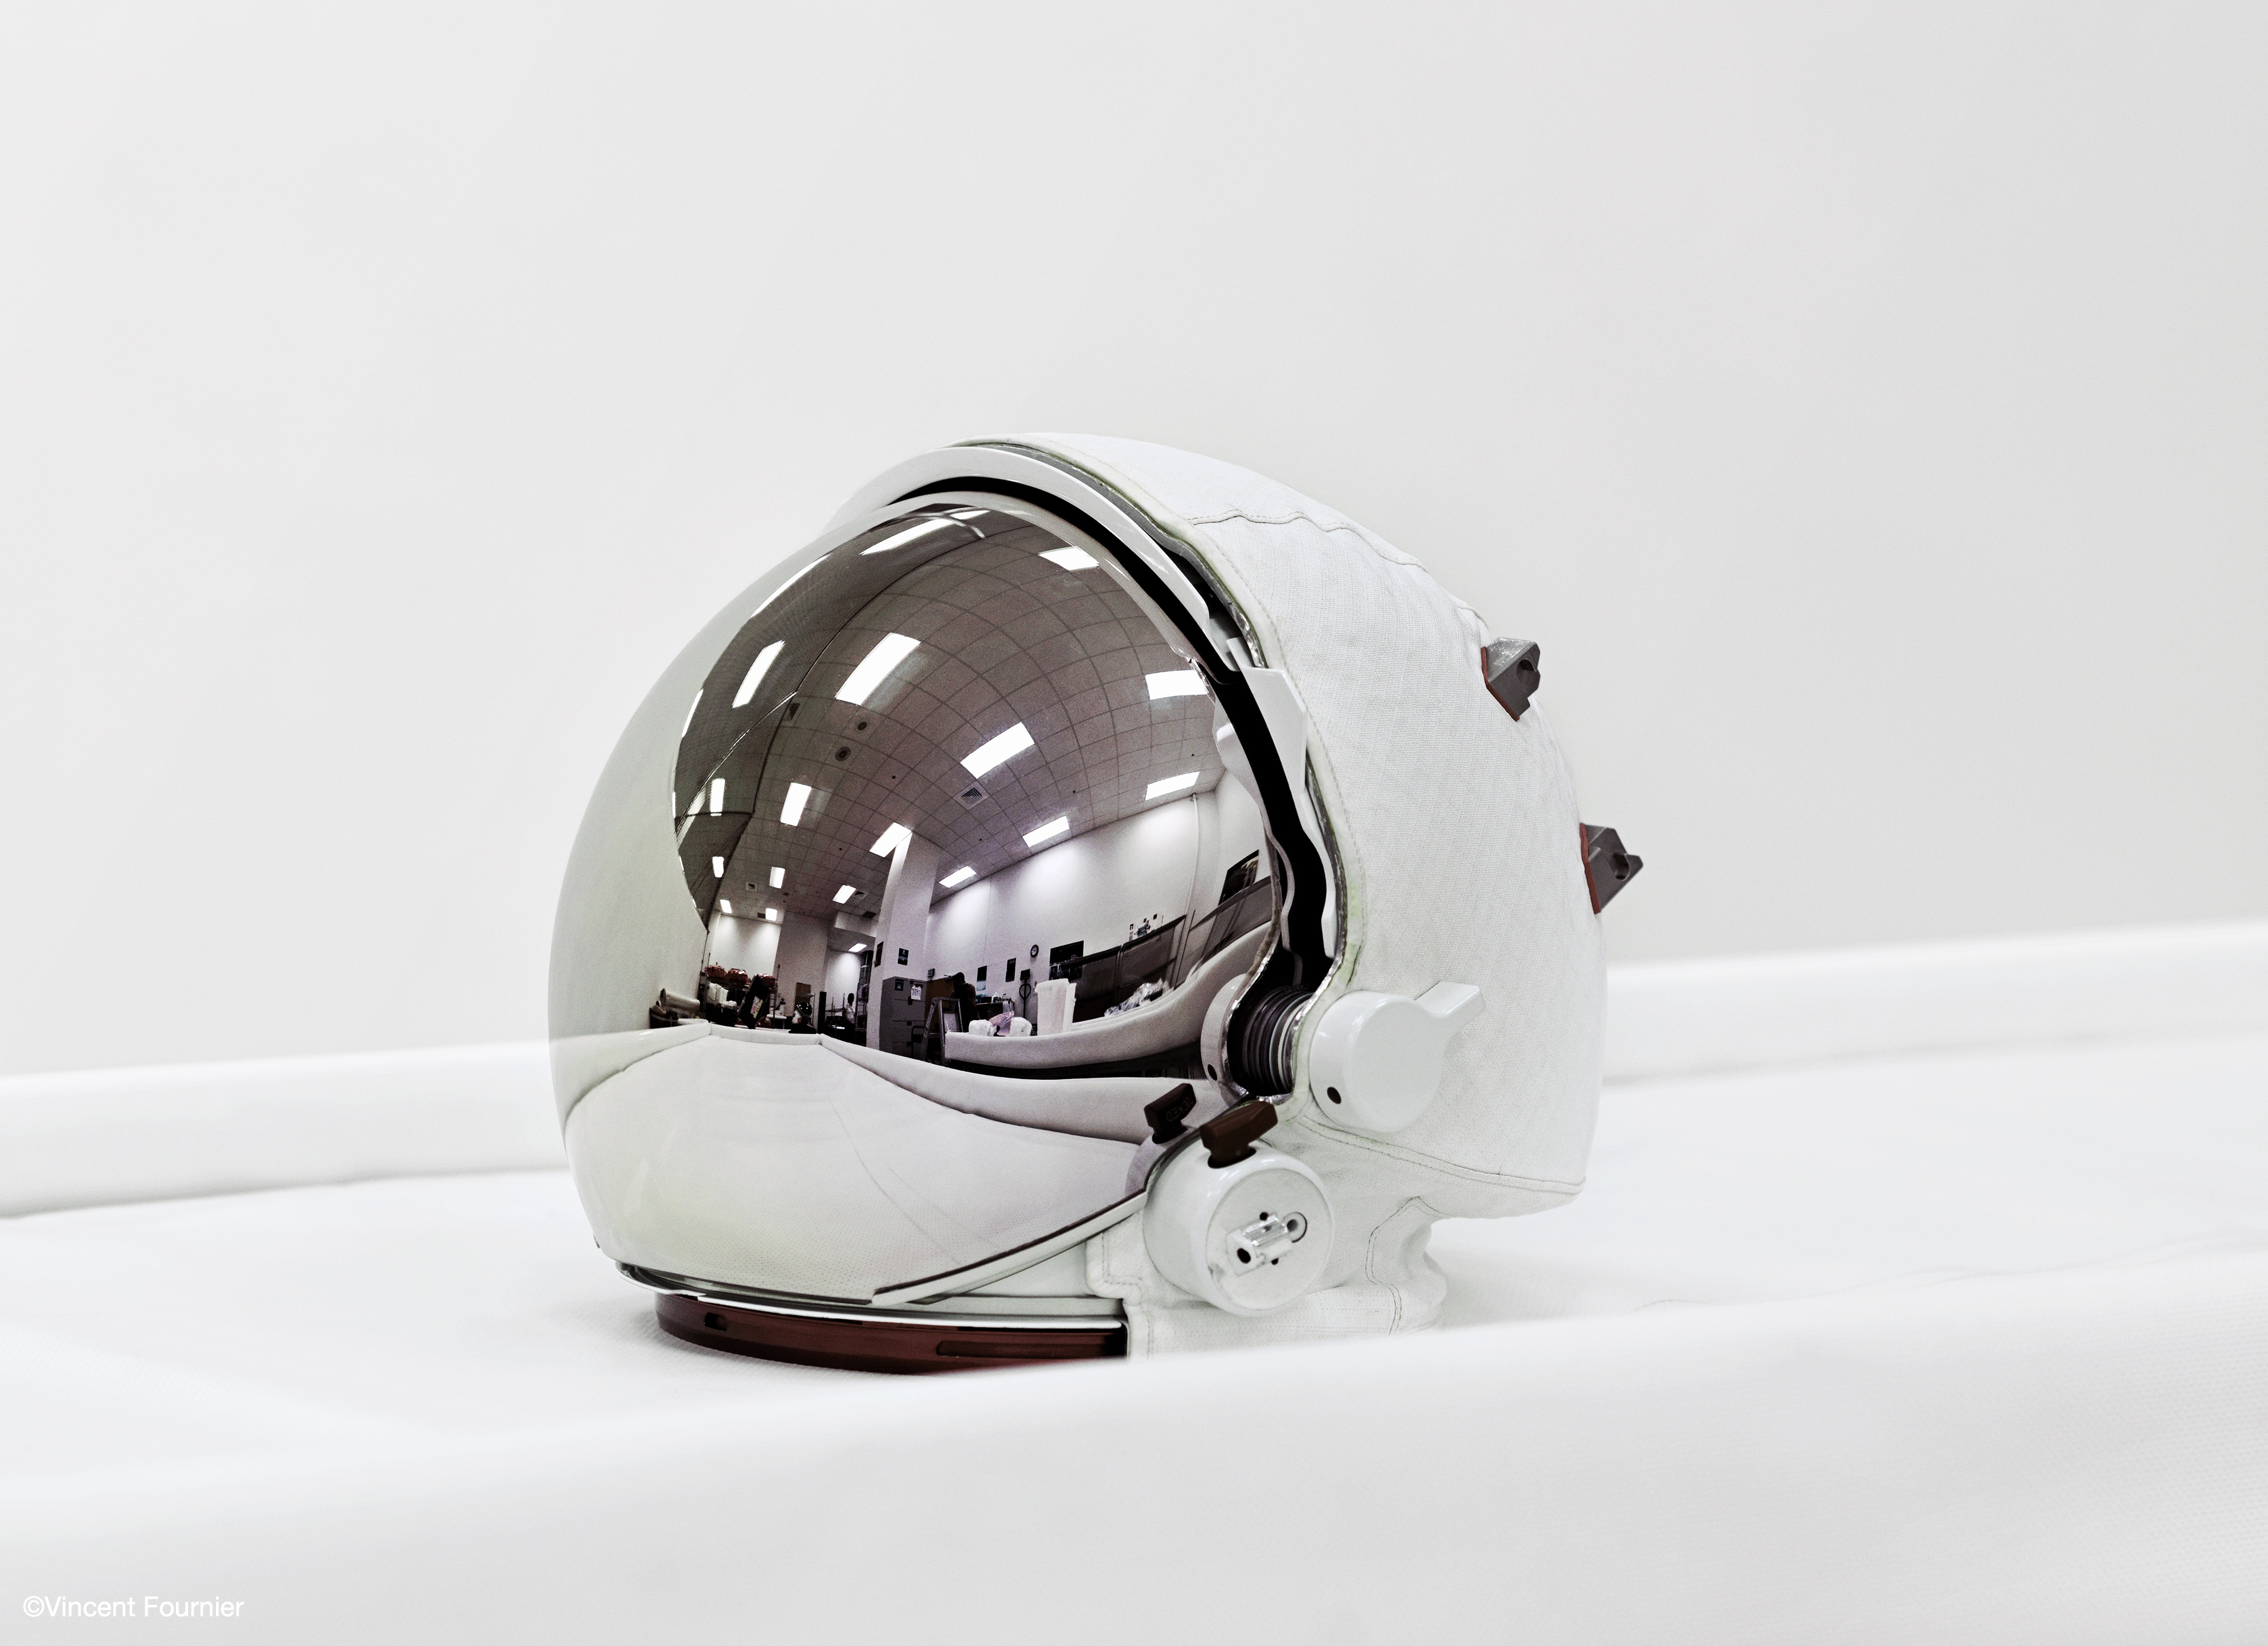 Vincent Fournier - SpaceHelmet